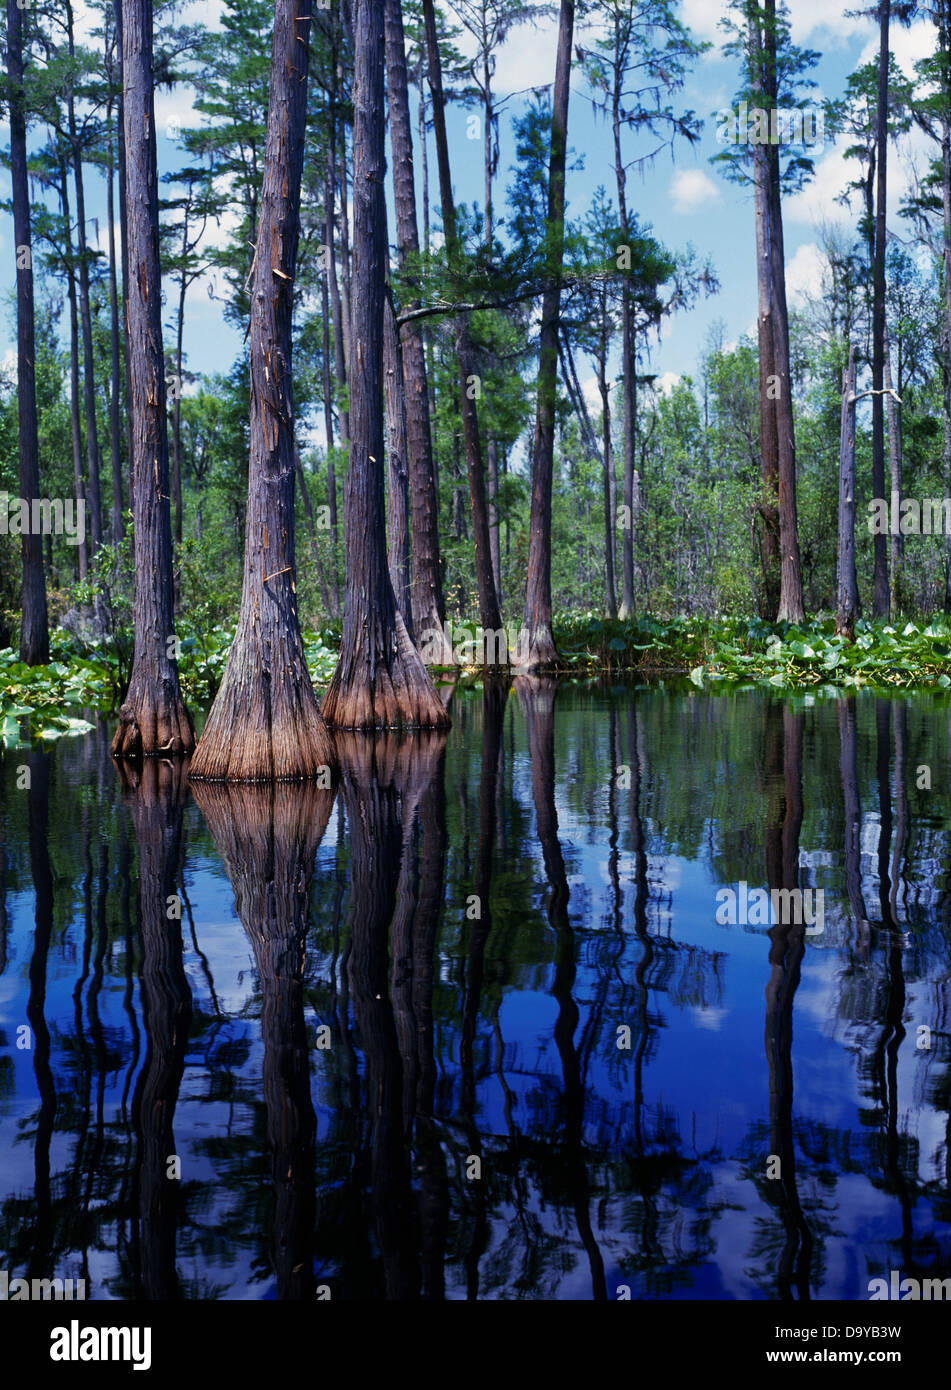 Pond Cypress and waterlilies along the Suwannee River, Okefenokee National Wildlife Refuge, Georgia. - Stock Image